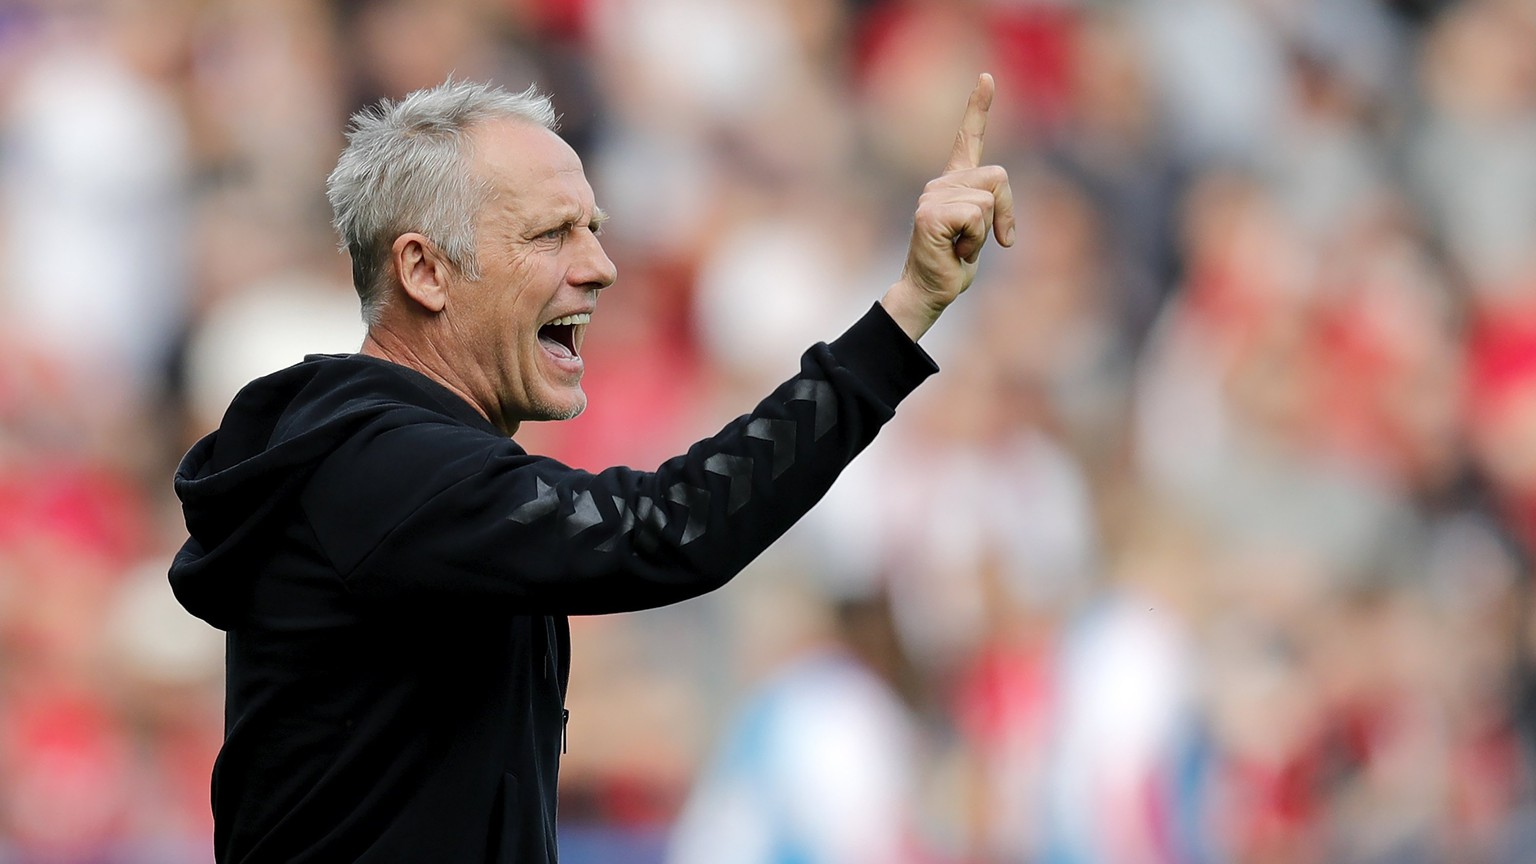 epa06699031 Freiburg's head coach Christian Streich reacts during the German Bundesliga soccer match between SC Freiburg and FC Cologne in Freiburg, Germany, 28 April 2018.  EPA/RONALD WITTEK (EMBARGO CONDITIONS - ATTENTION: Due to the accreditation guidelines, the DFL only permits the publication and utilisation of up to 15 pictures per match on the internet and in online media during the match.)